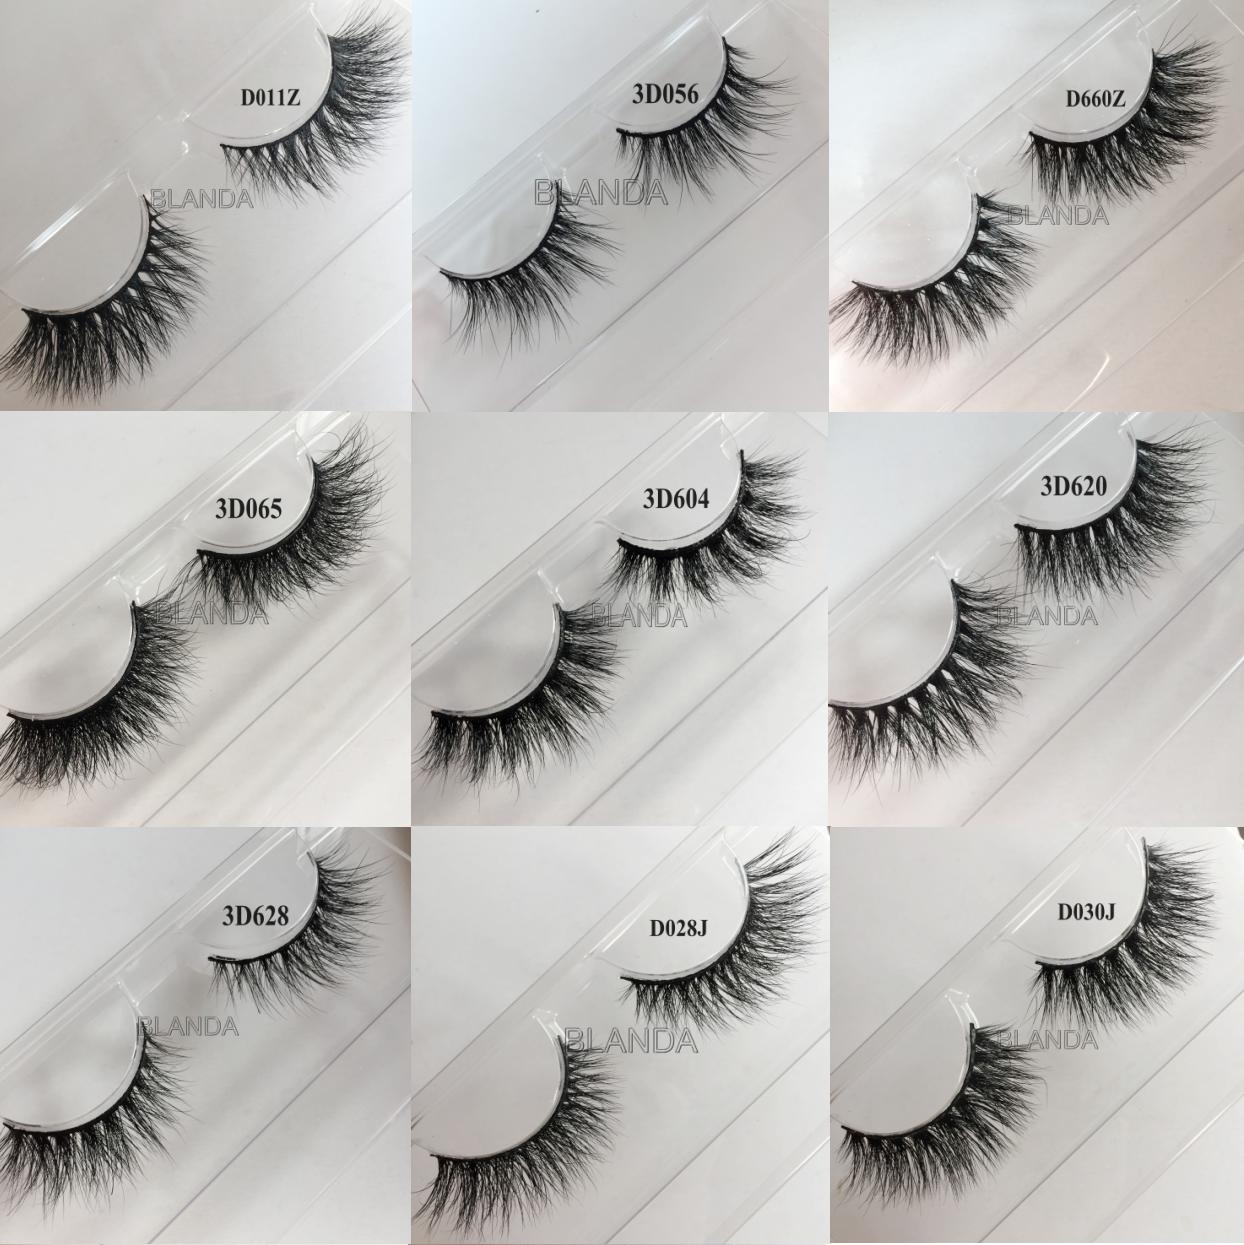 Great Quality and Softest Dramatic Style Lashes 3D Mink Eyelashes False eyelashes Made With Real Siberian Mink Fur Hairs